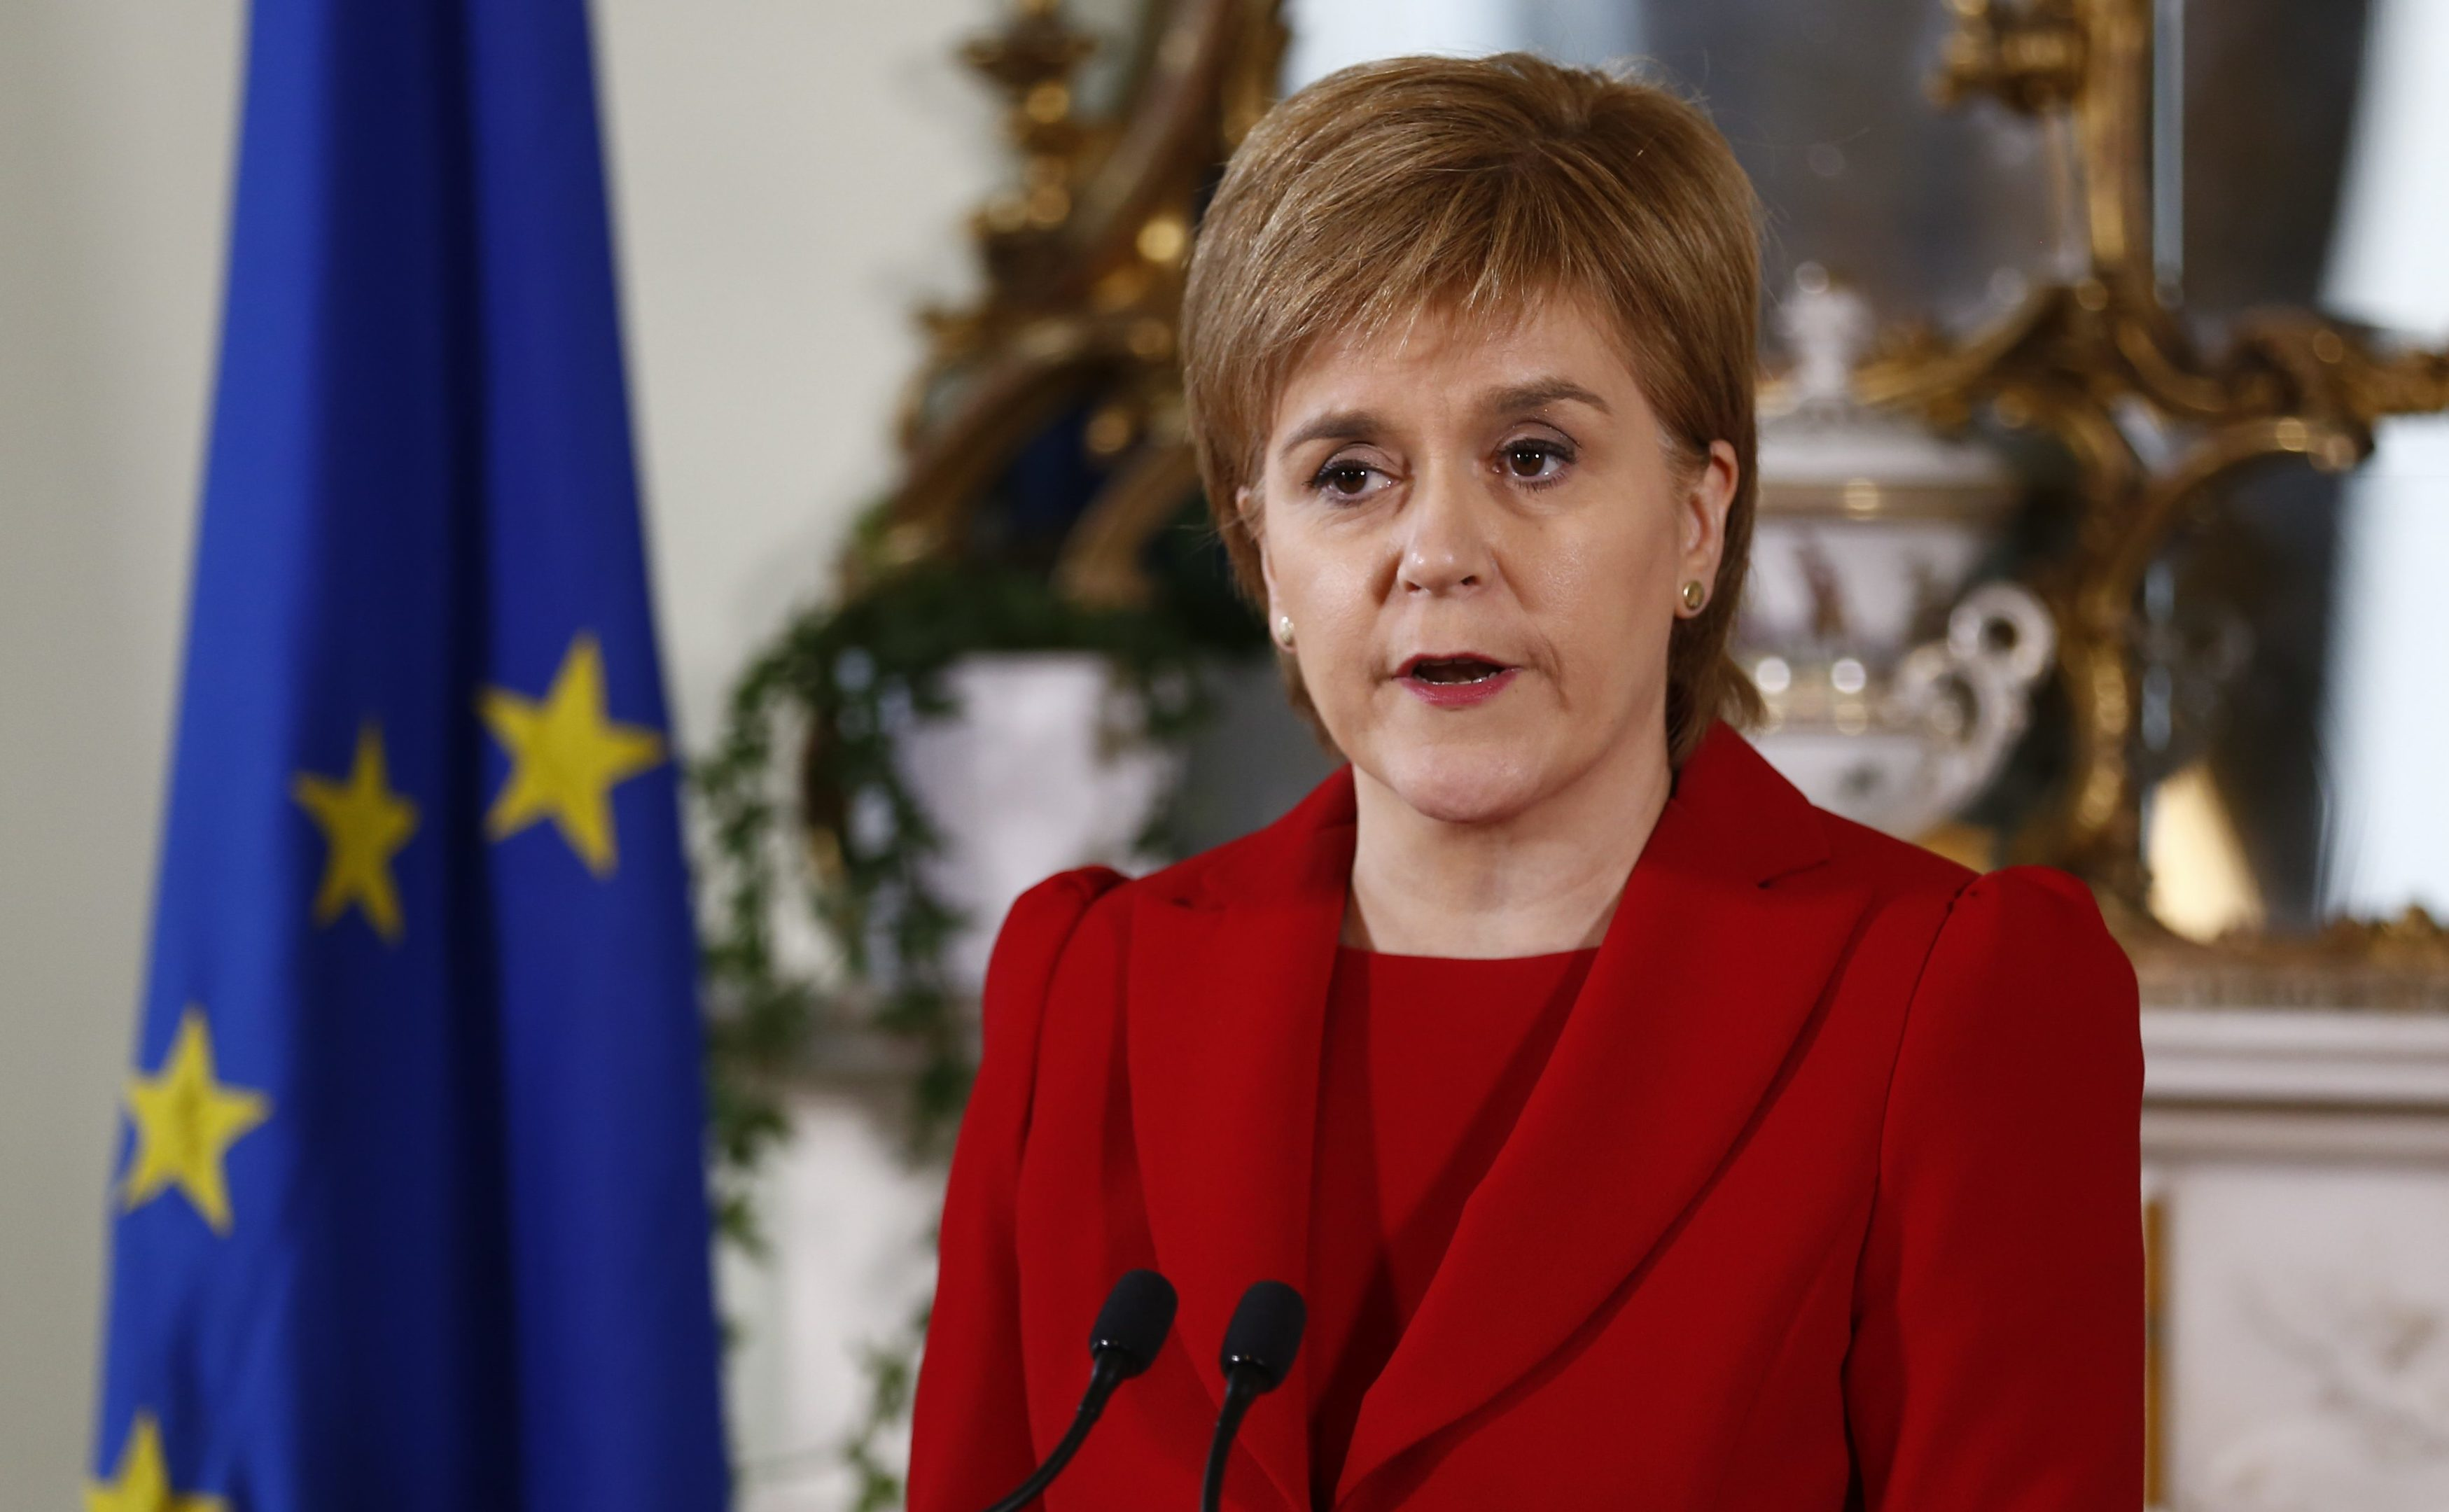 Nicola Sturgeon announces her reaction to Brexit, flanked by EU and Saltire flags.